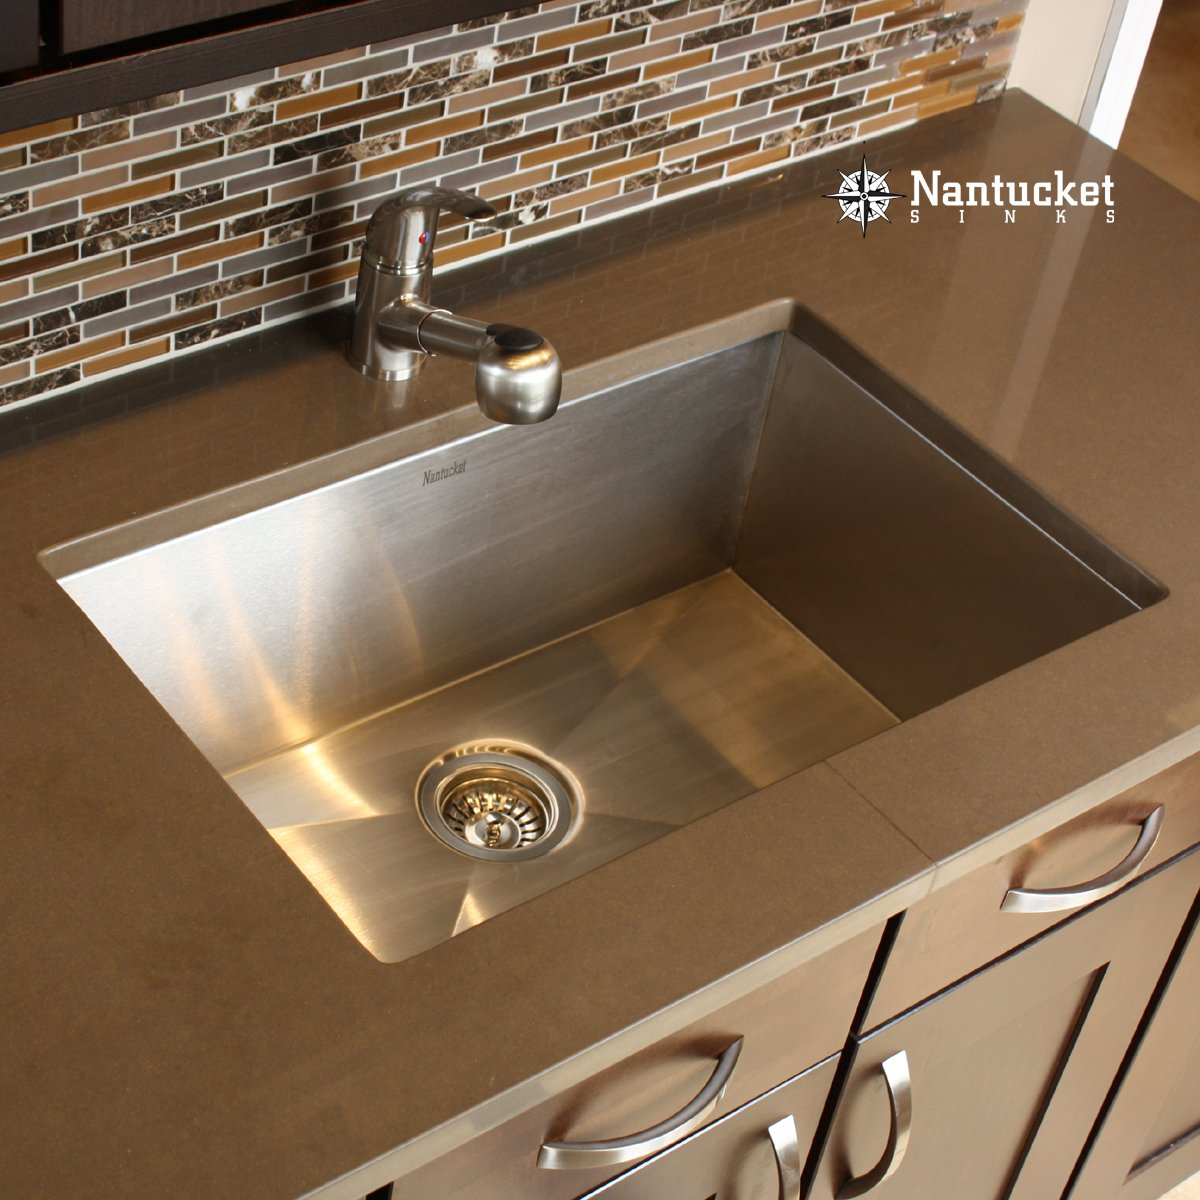 Nantucket Sinks ZR2818 16 28 Inch Pro Series Single Bowl Undermount Kitchen  Sink, Stainless Steel     Amazon.com